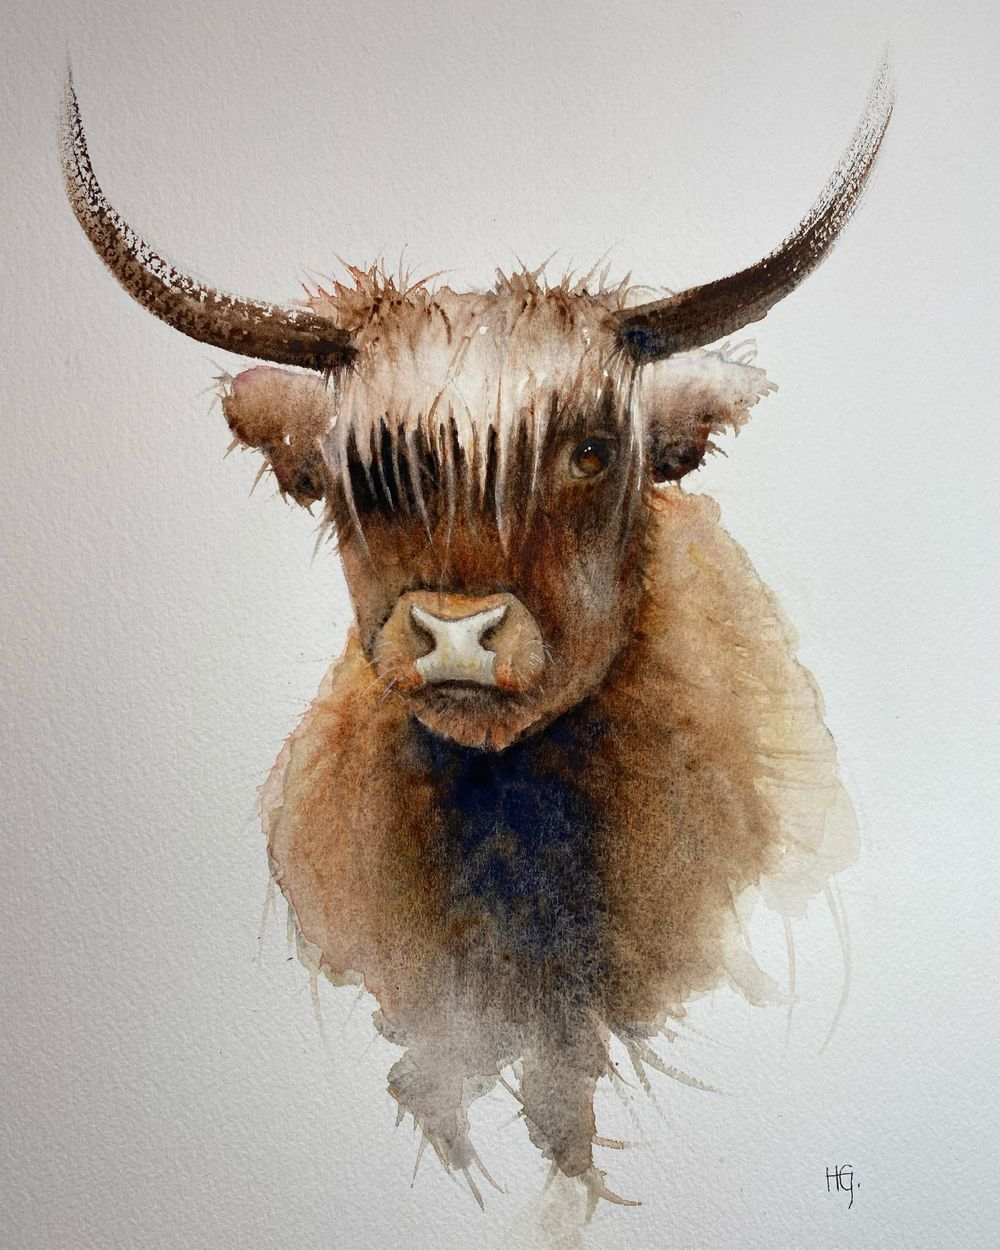 Highland cow - image 1 - student project